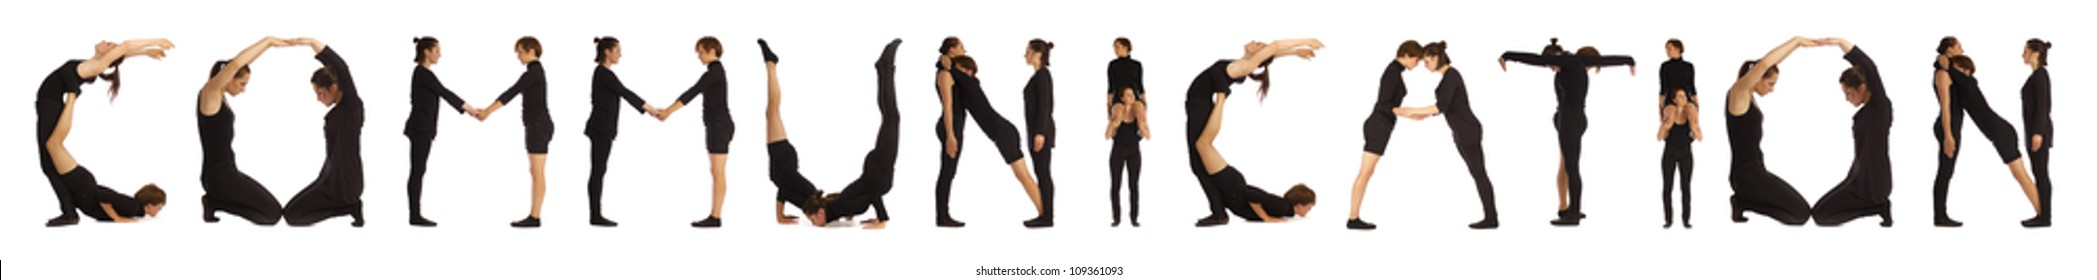 Black dressed people forming COMMUNICATION word over white